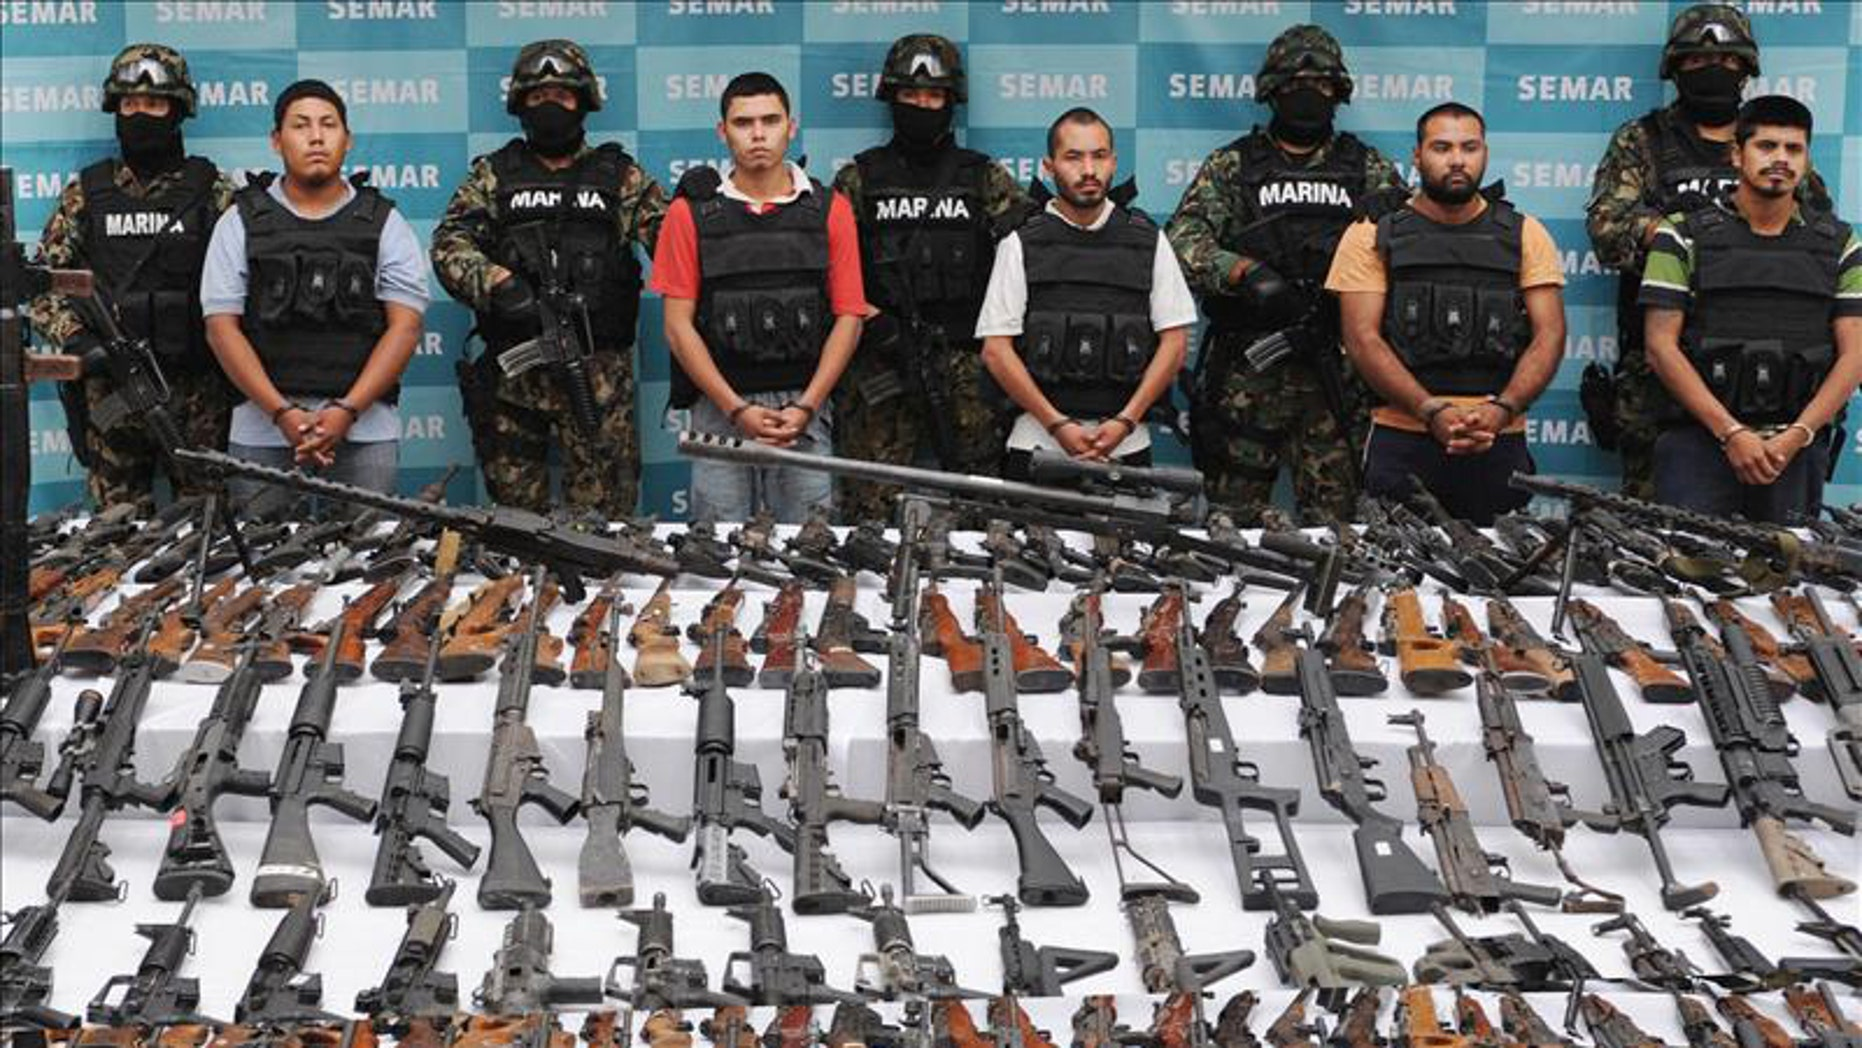 Marines arrest 5 Zetas cartel members in northern Mexico.  EFE